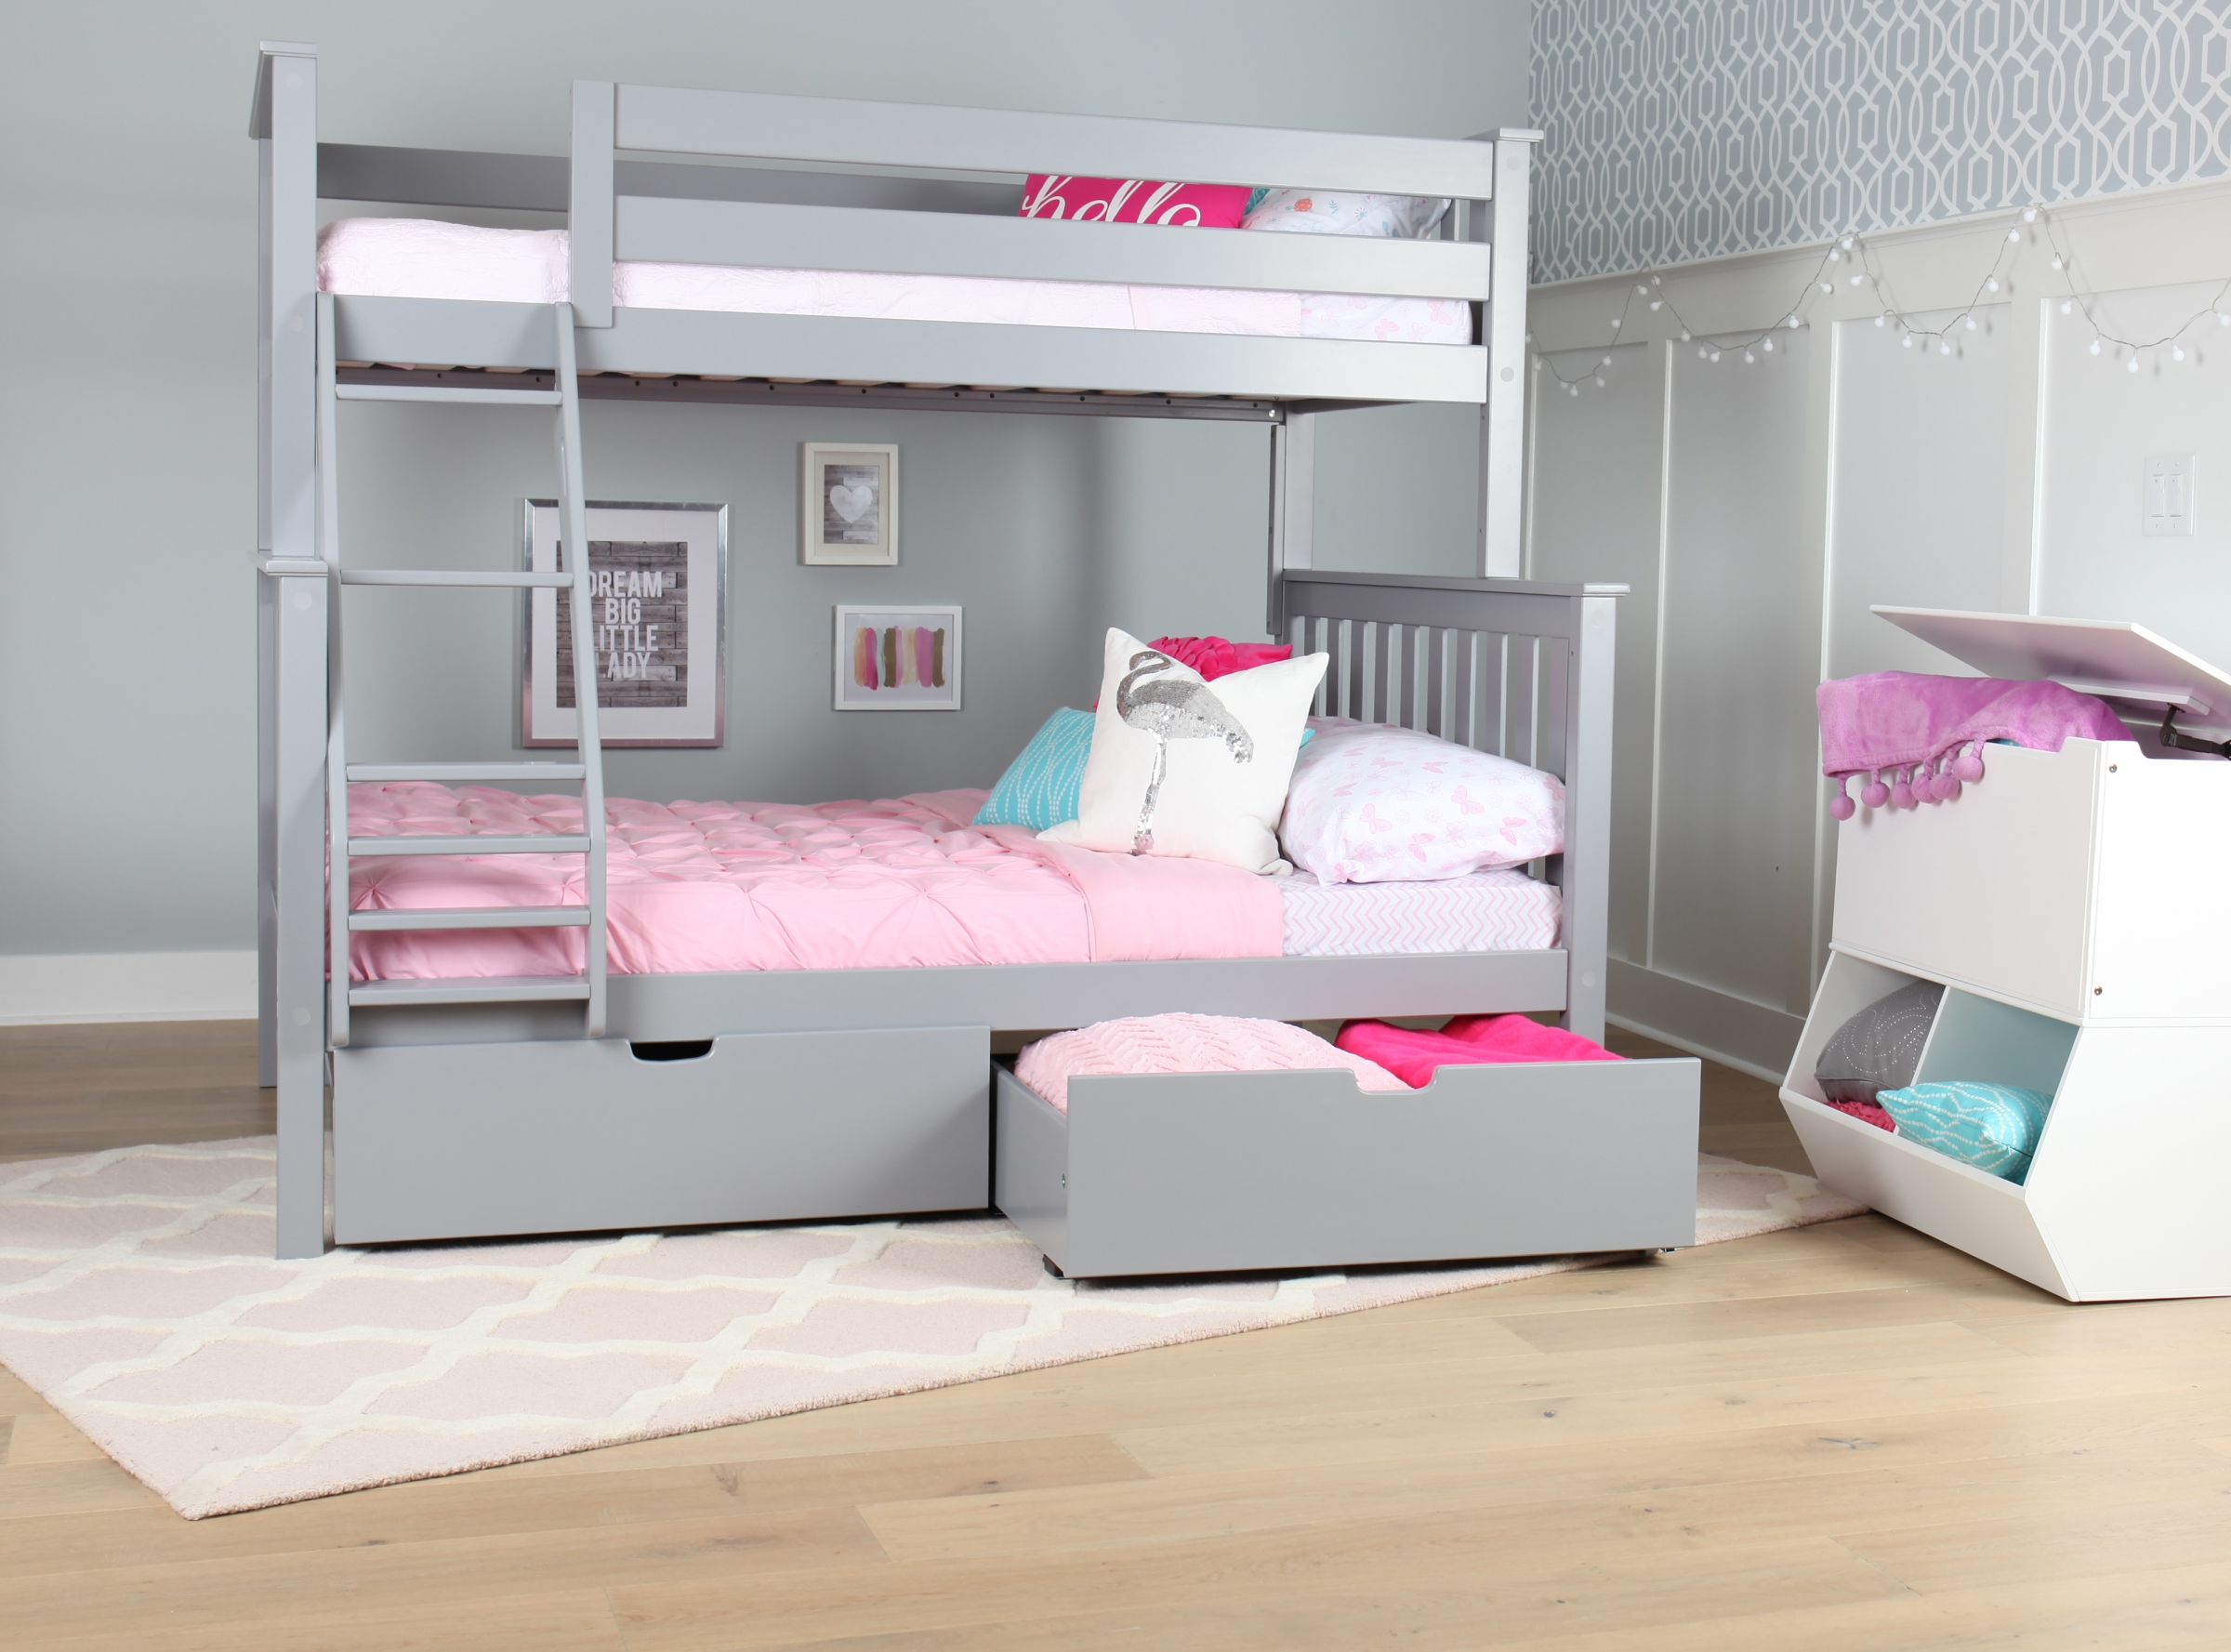 Maxwood Bunk Bed Image Gallery Maxwood Furniture Inc